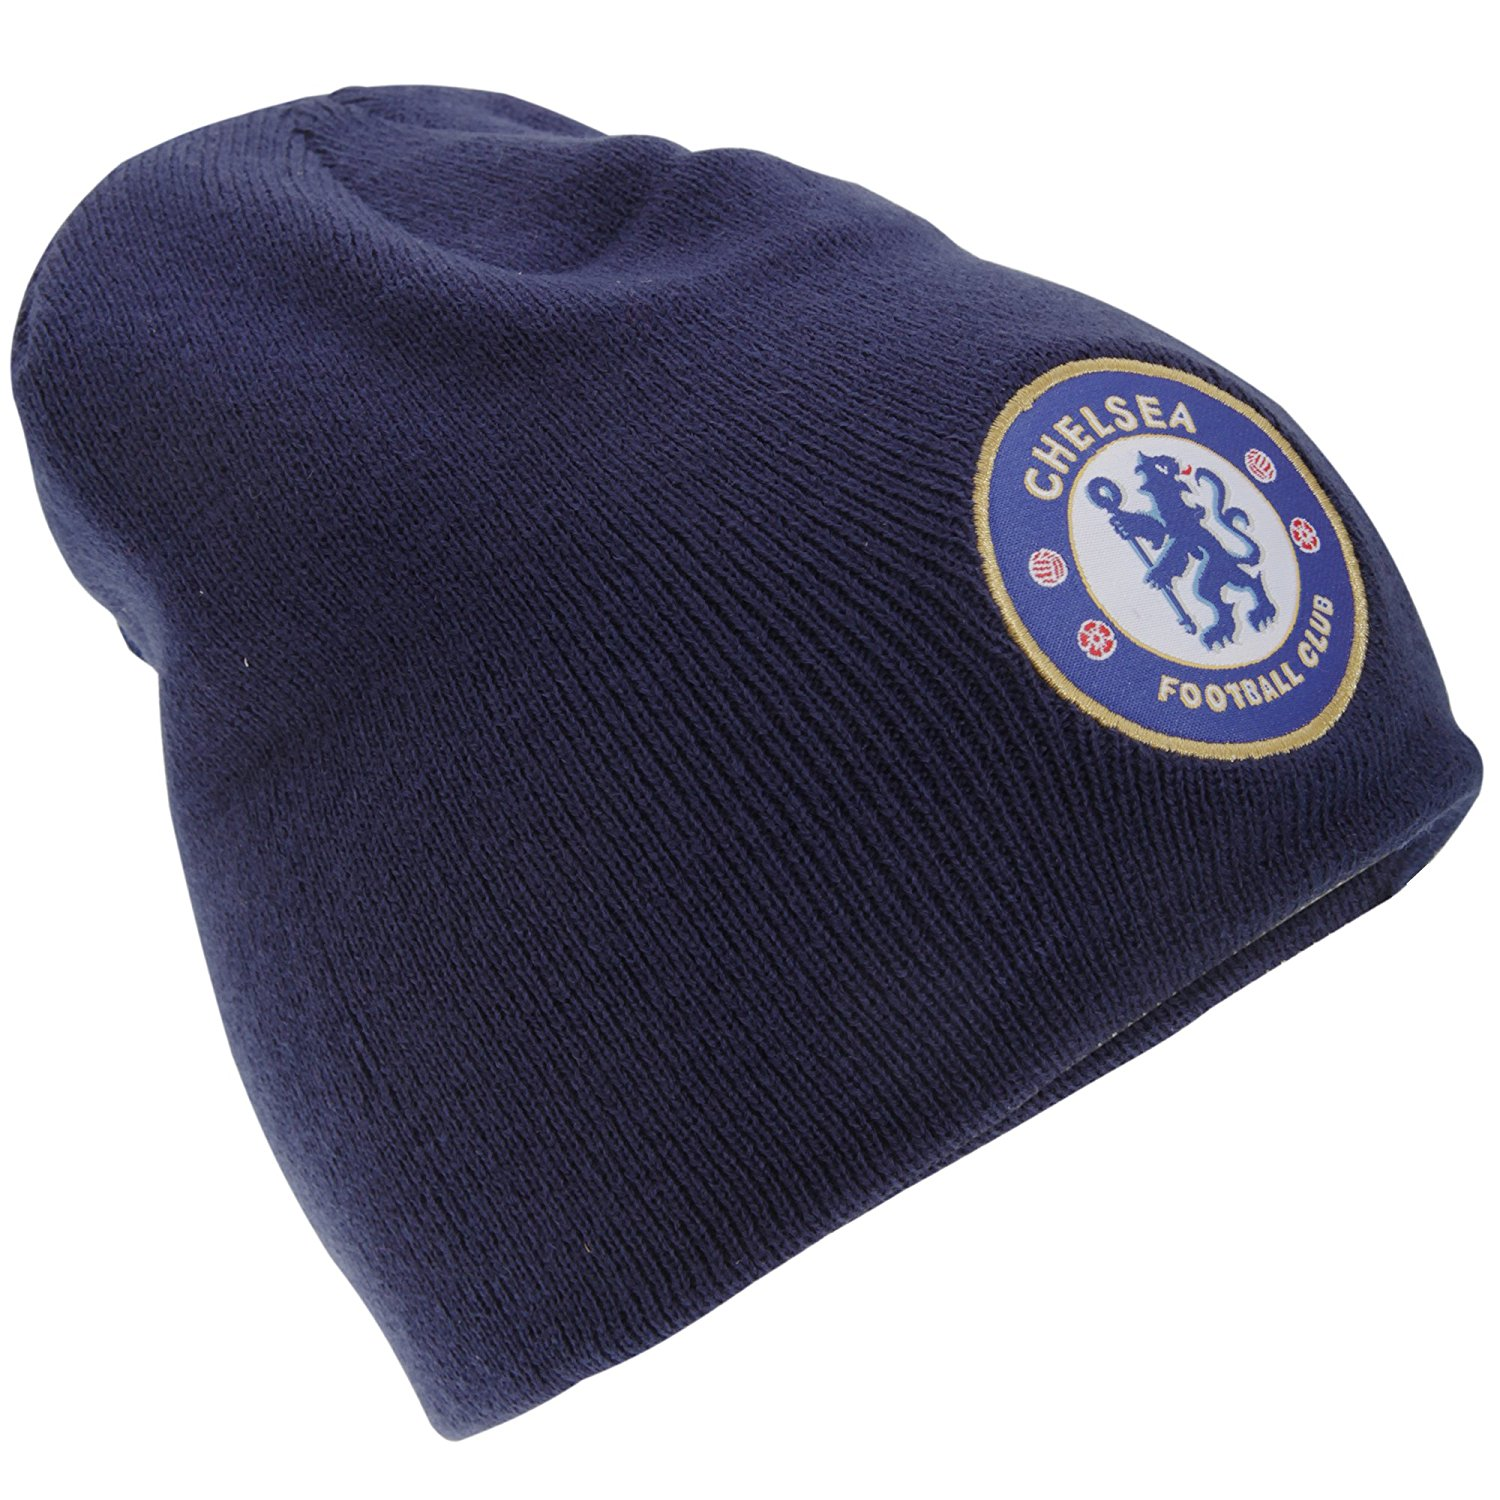 222de5a316055 Get Quotations · Chelsea FC Mens Official Knitted Winter Football Crest Beanie  Hat